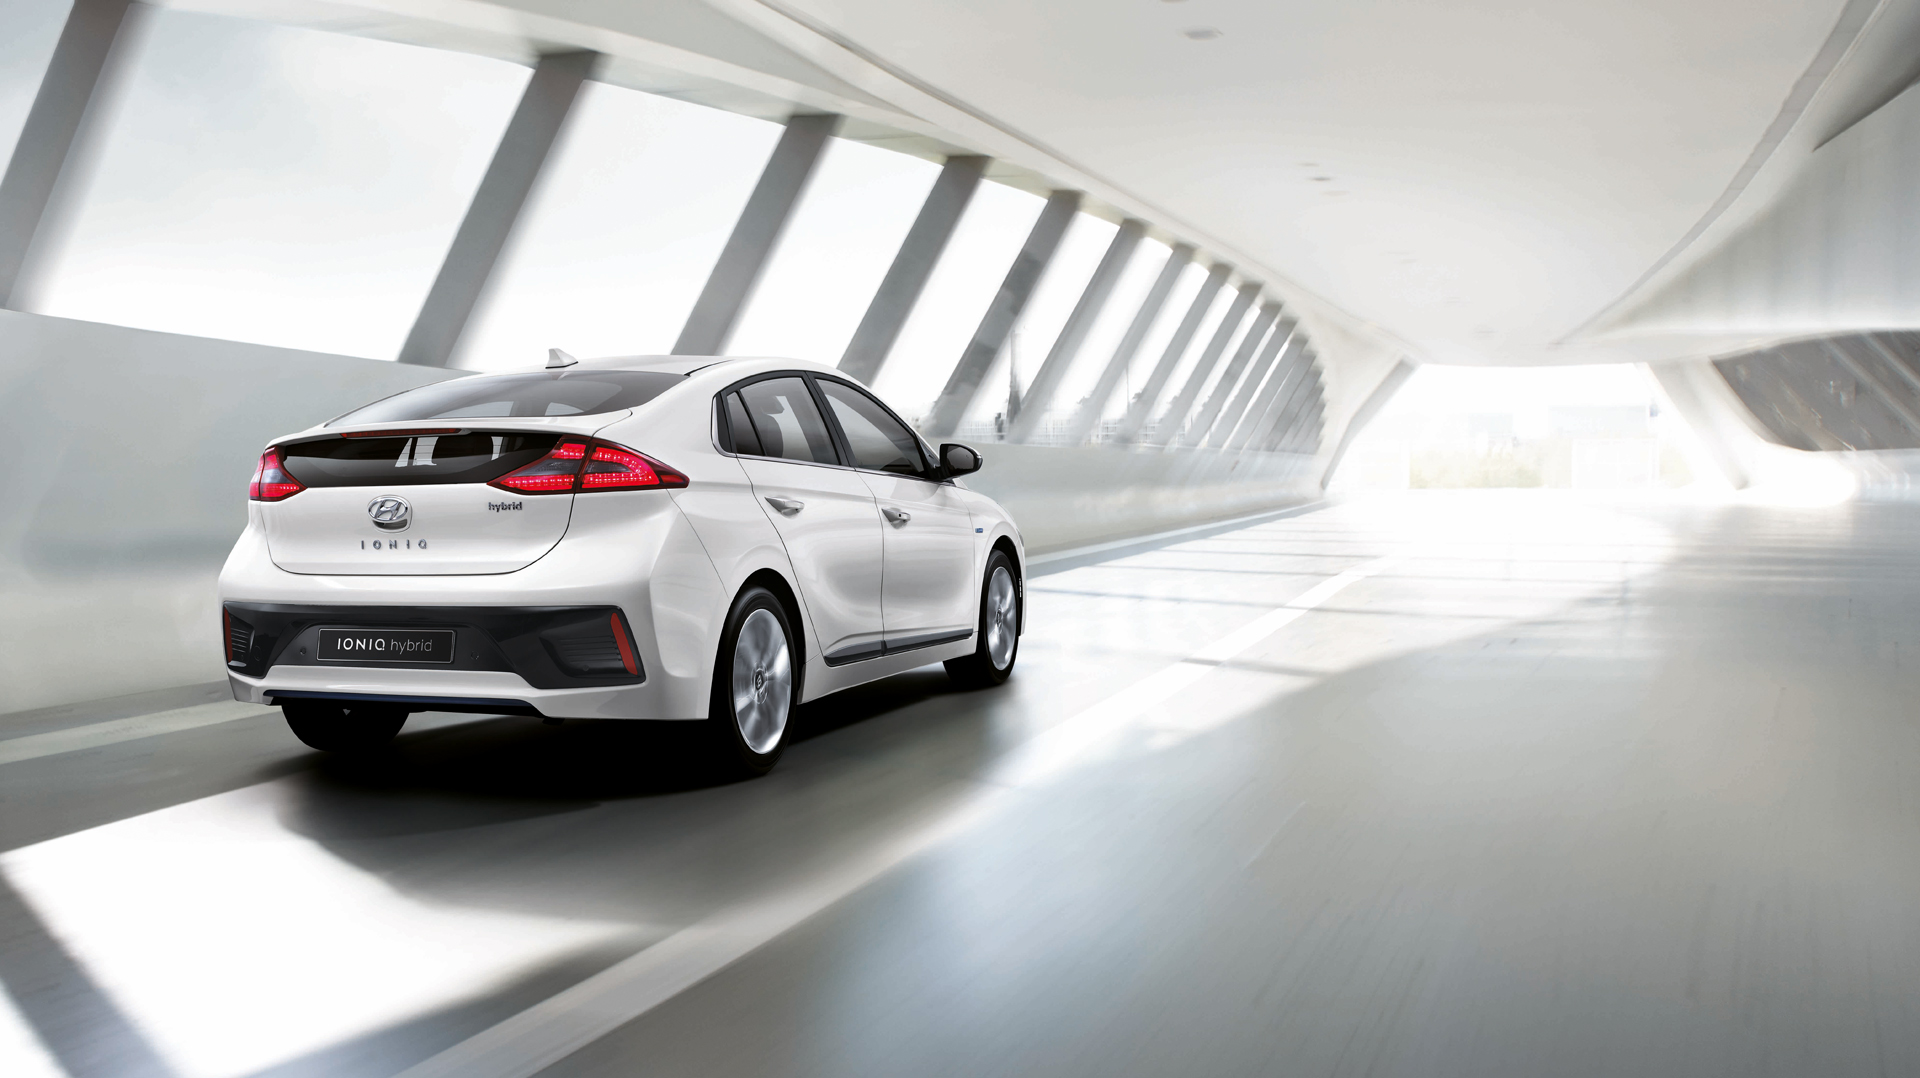 Here's what Hyundai's first all-electric vehicle looks like